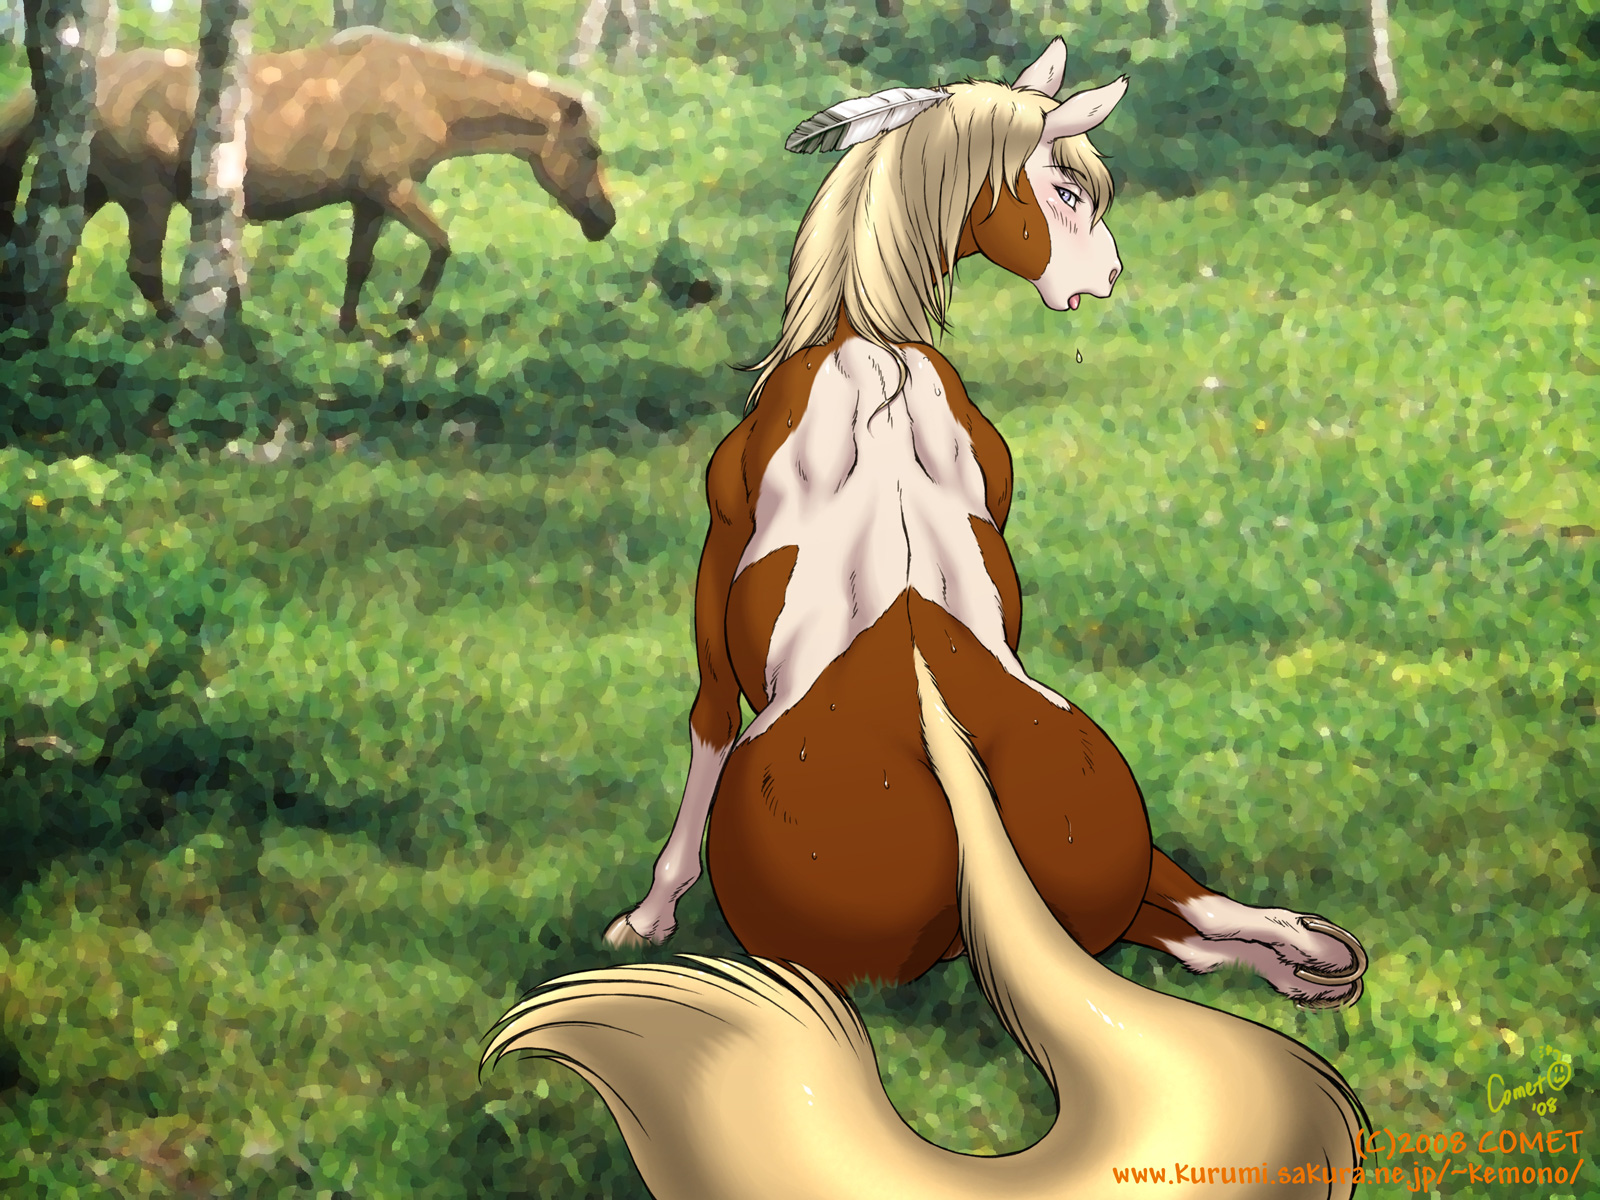 Furry horse pussy porn female horse wet pussy porn female horse wet pussy porn female